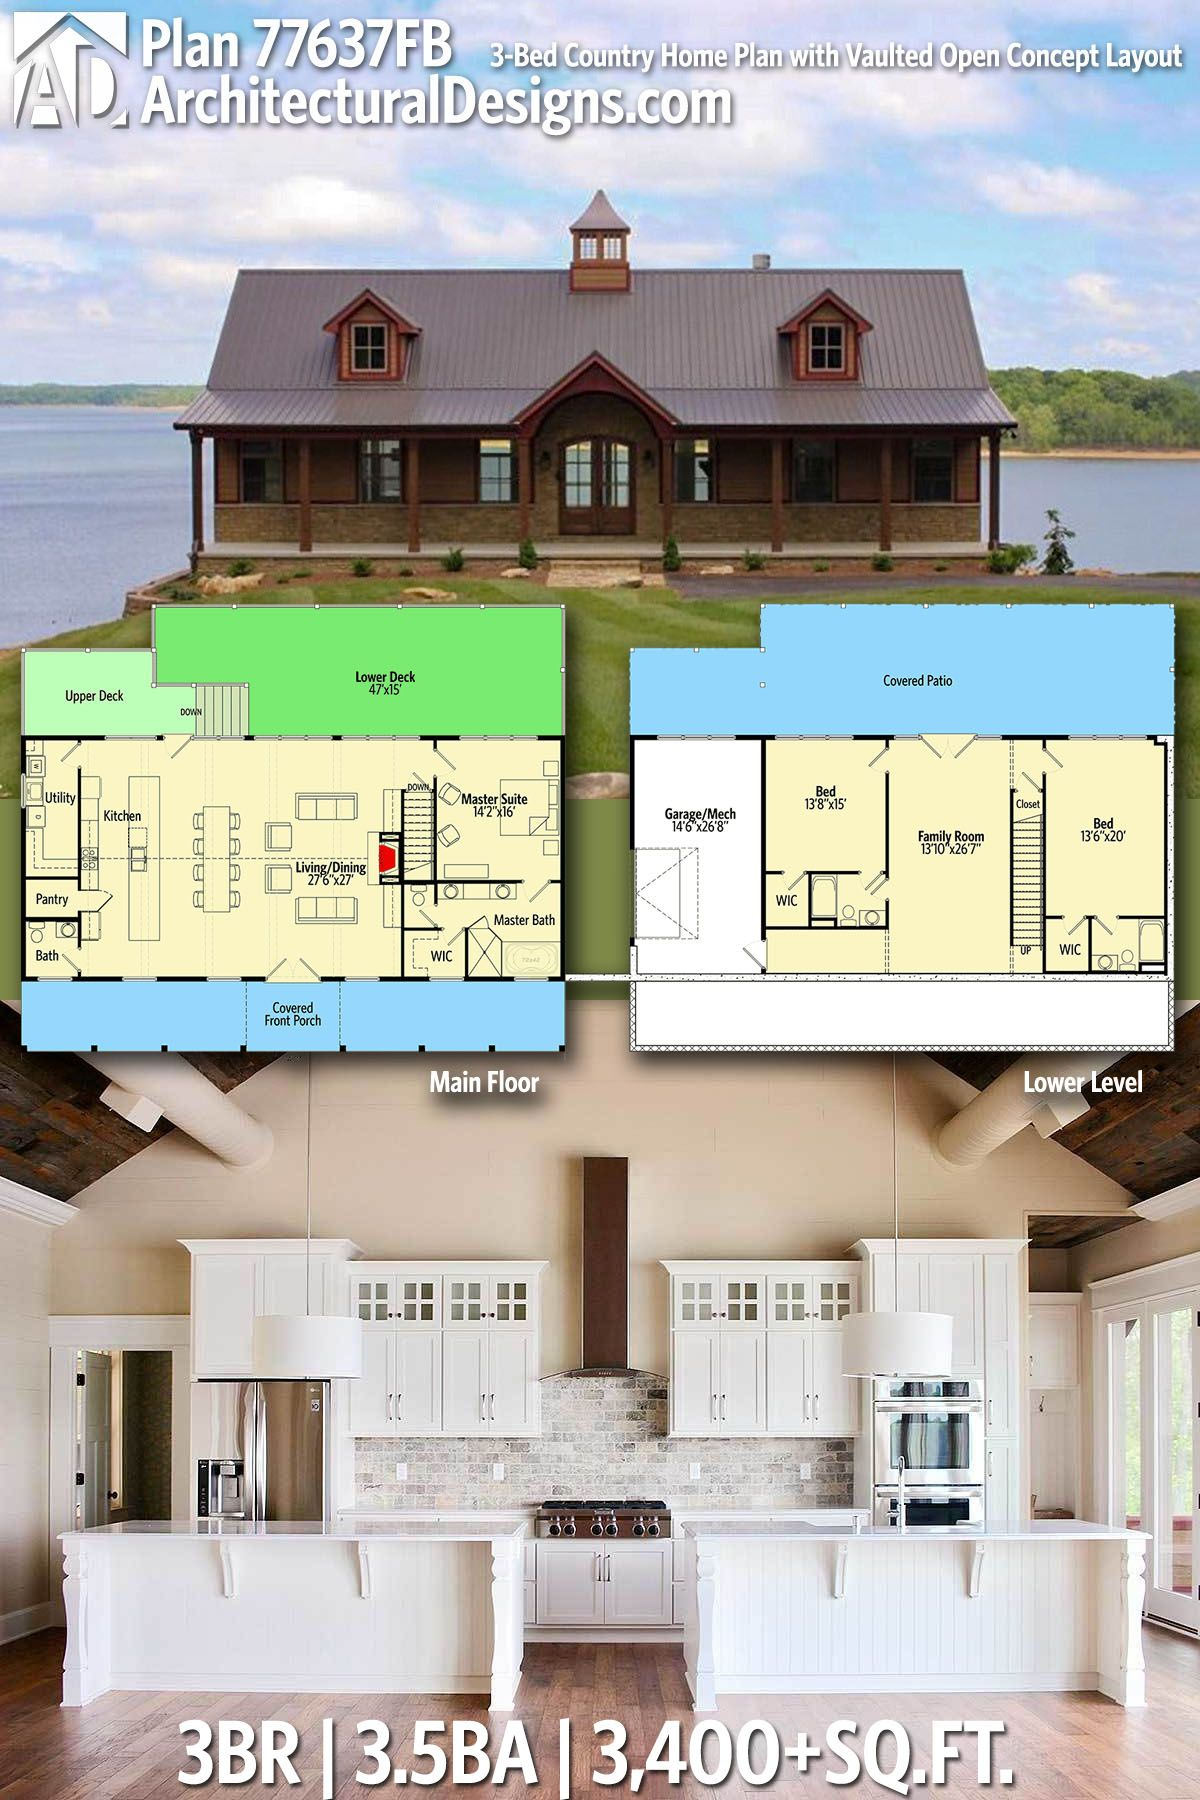 Plan 77637FB: 3-Bed Country Home Plan with Vaulted Open Concept ...